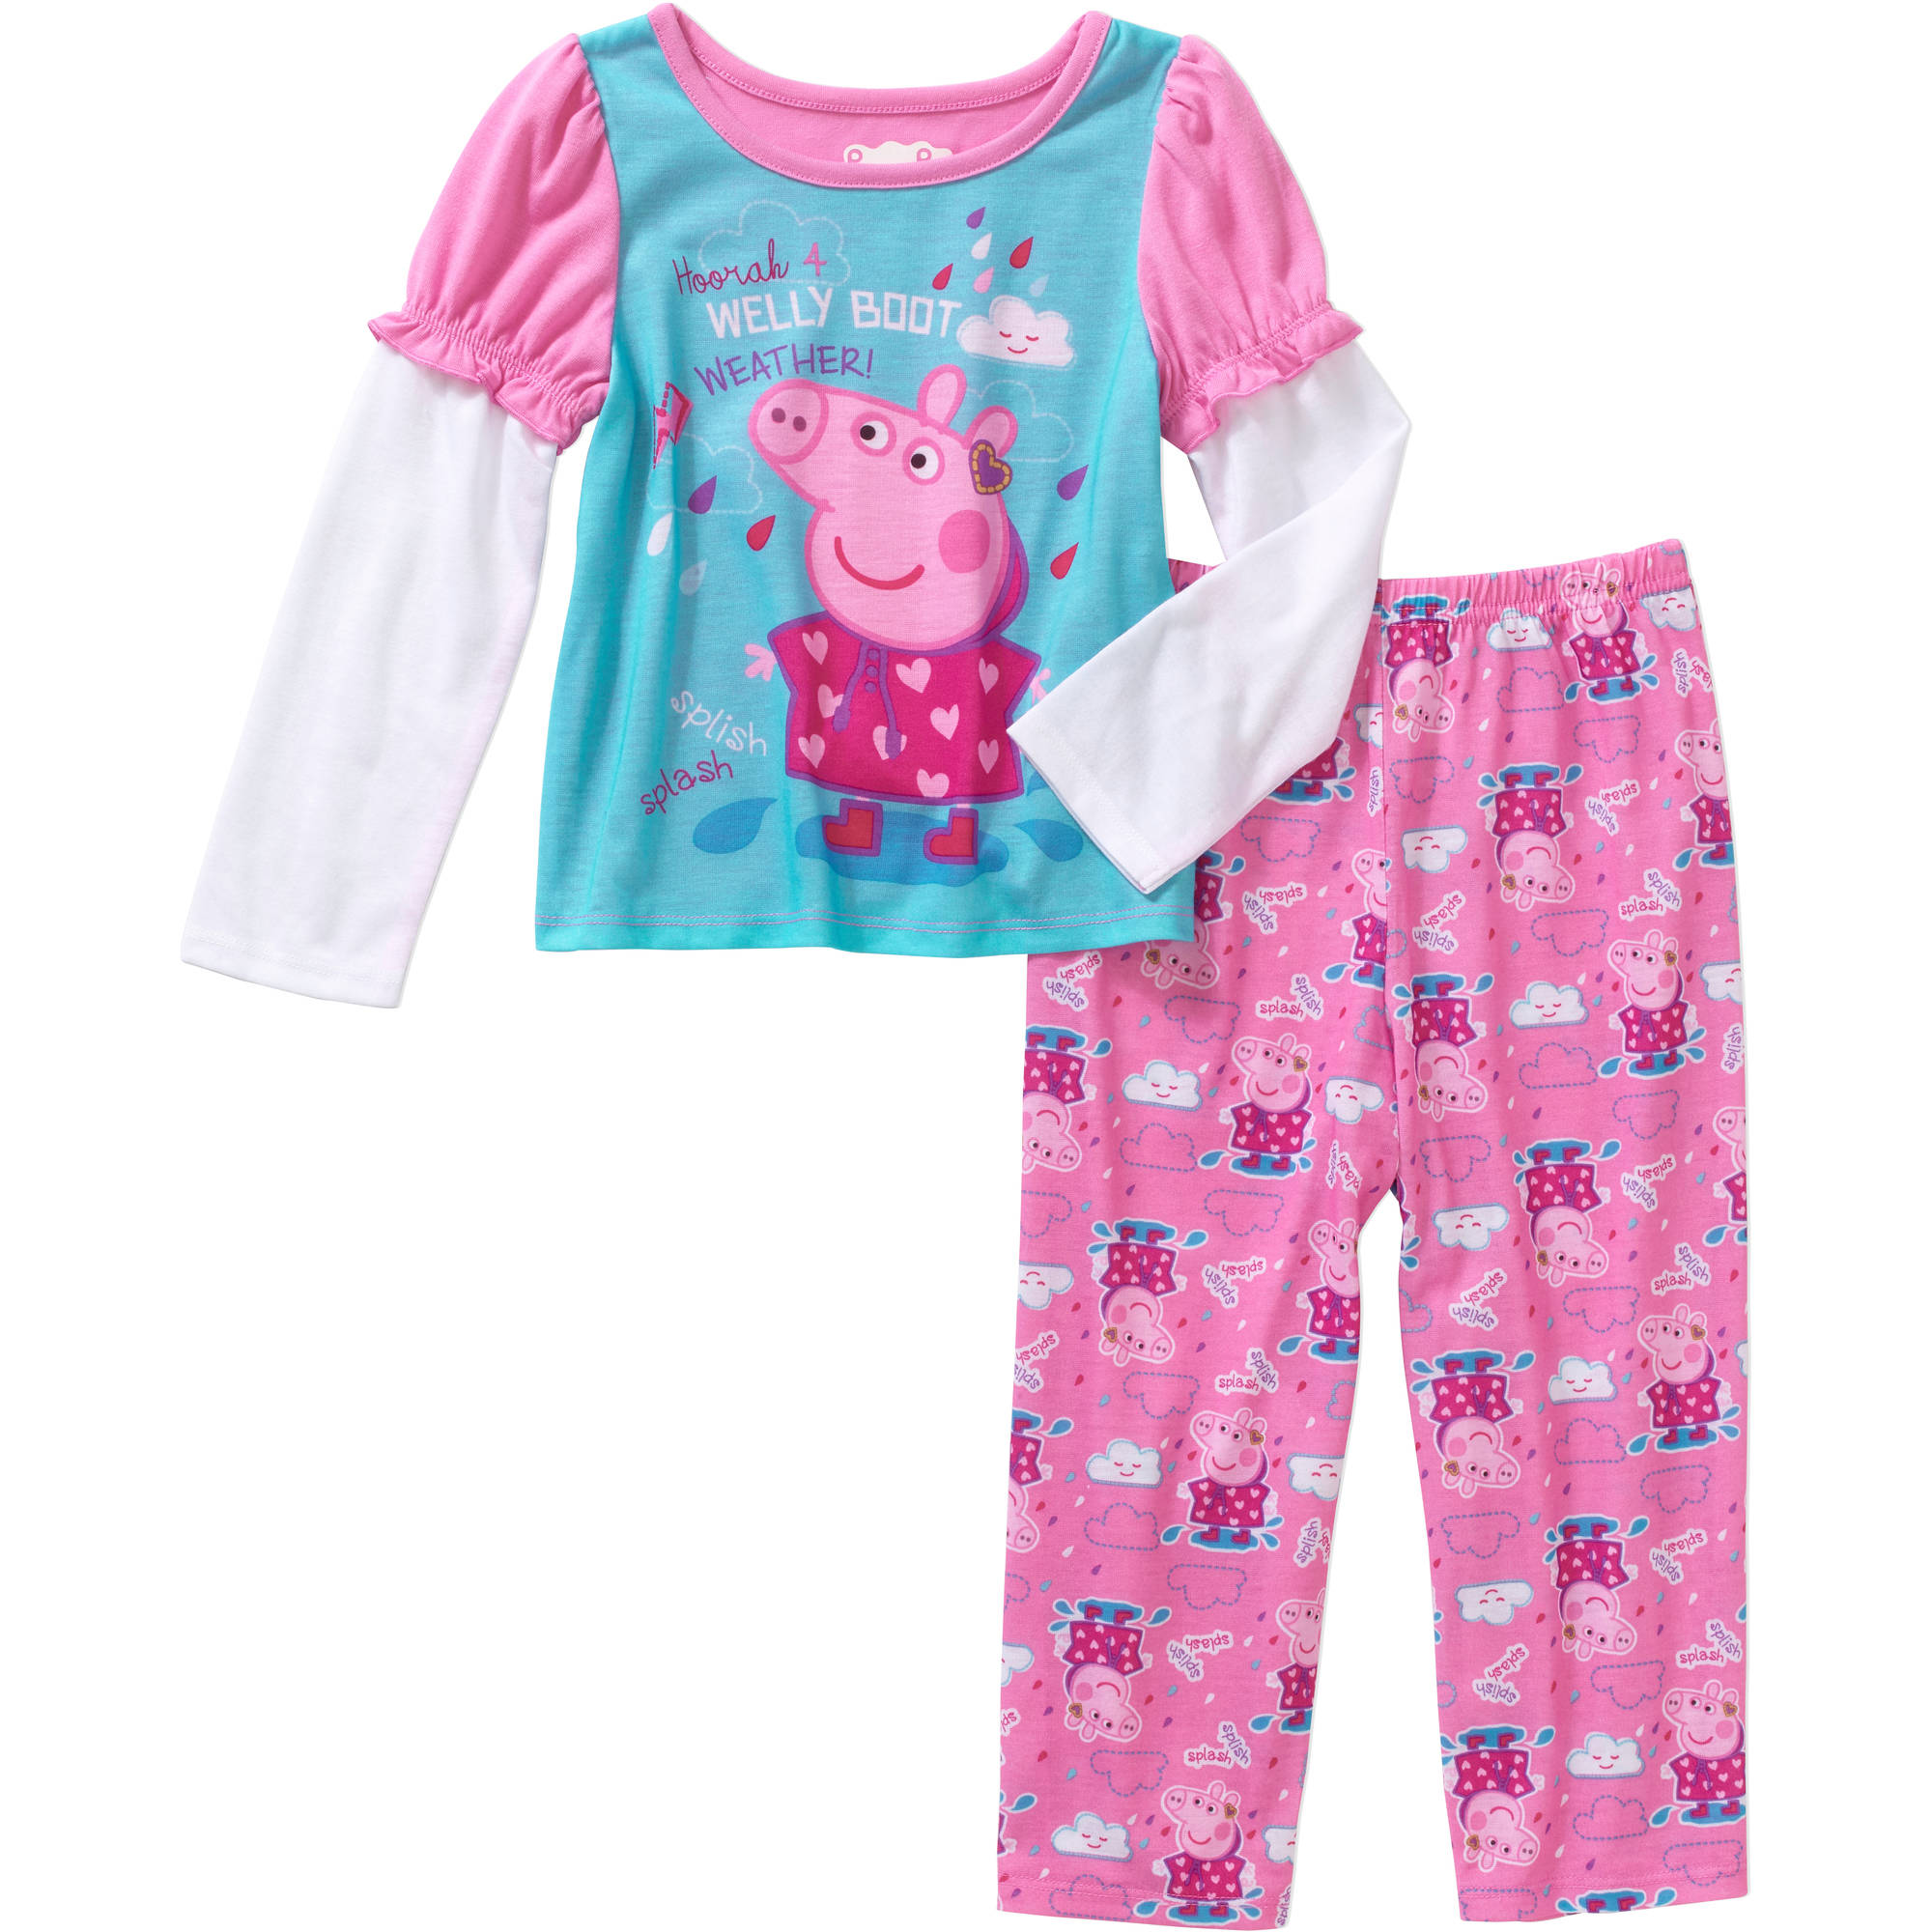 Toddler Girl Pajamas 2pc Set